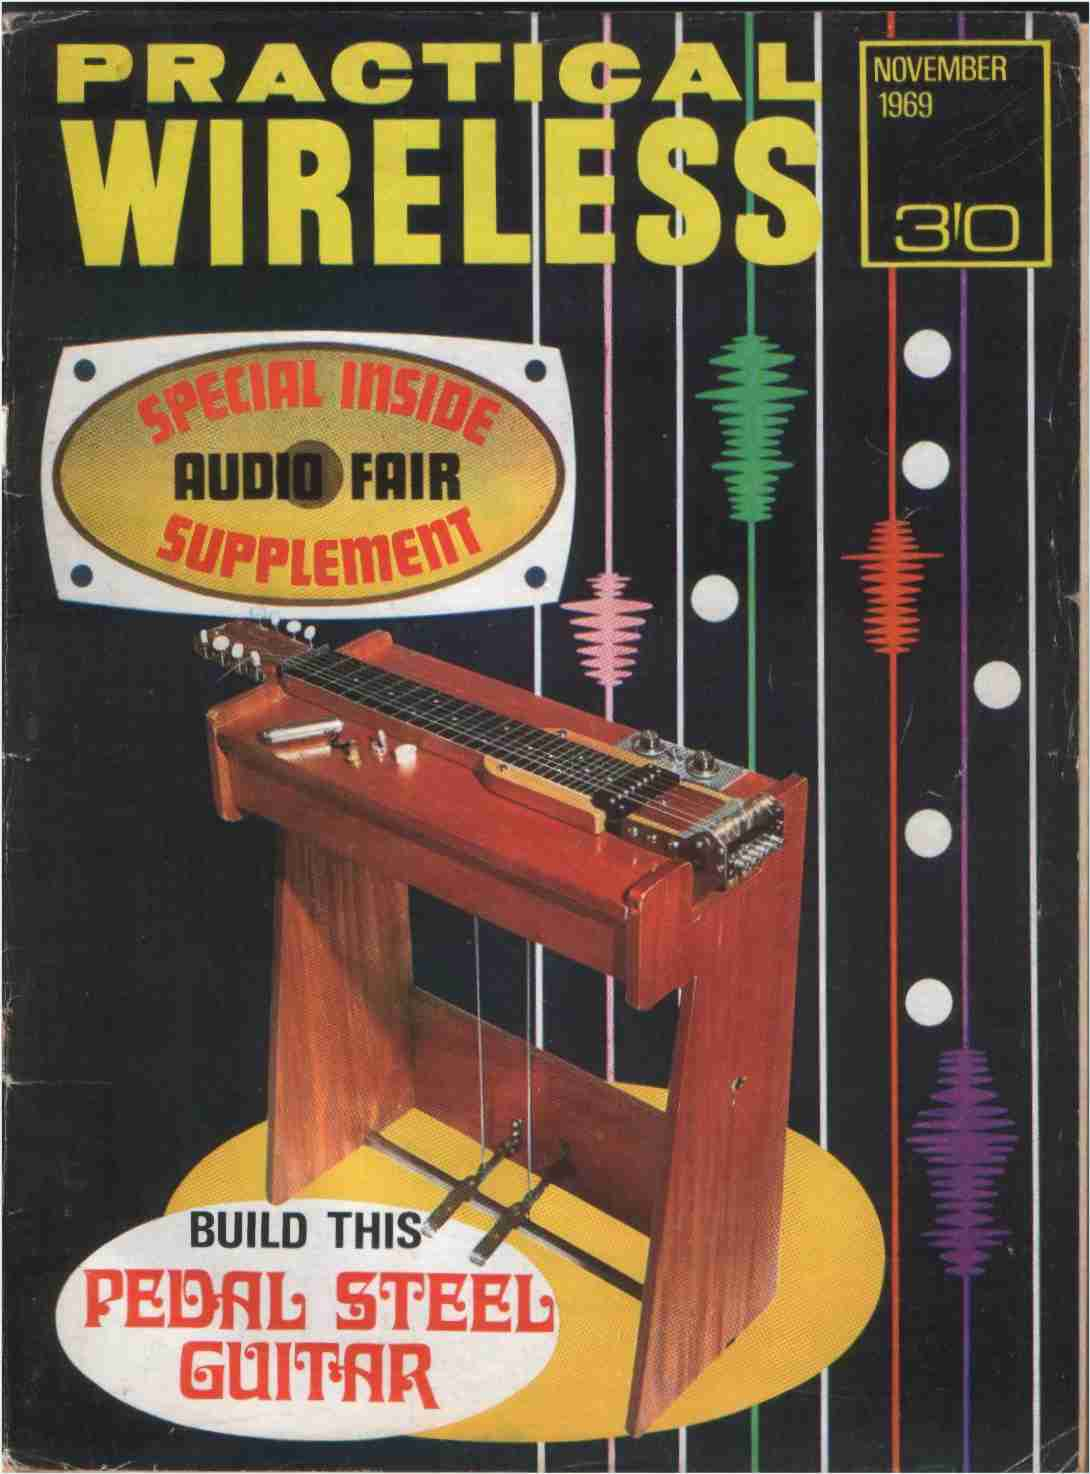 Vintage Radio And Electronics. Magazine Covers From 1969